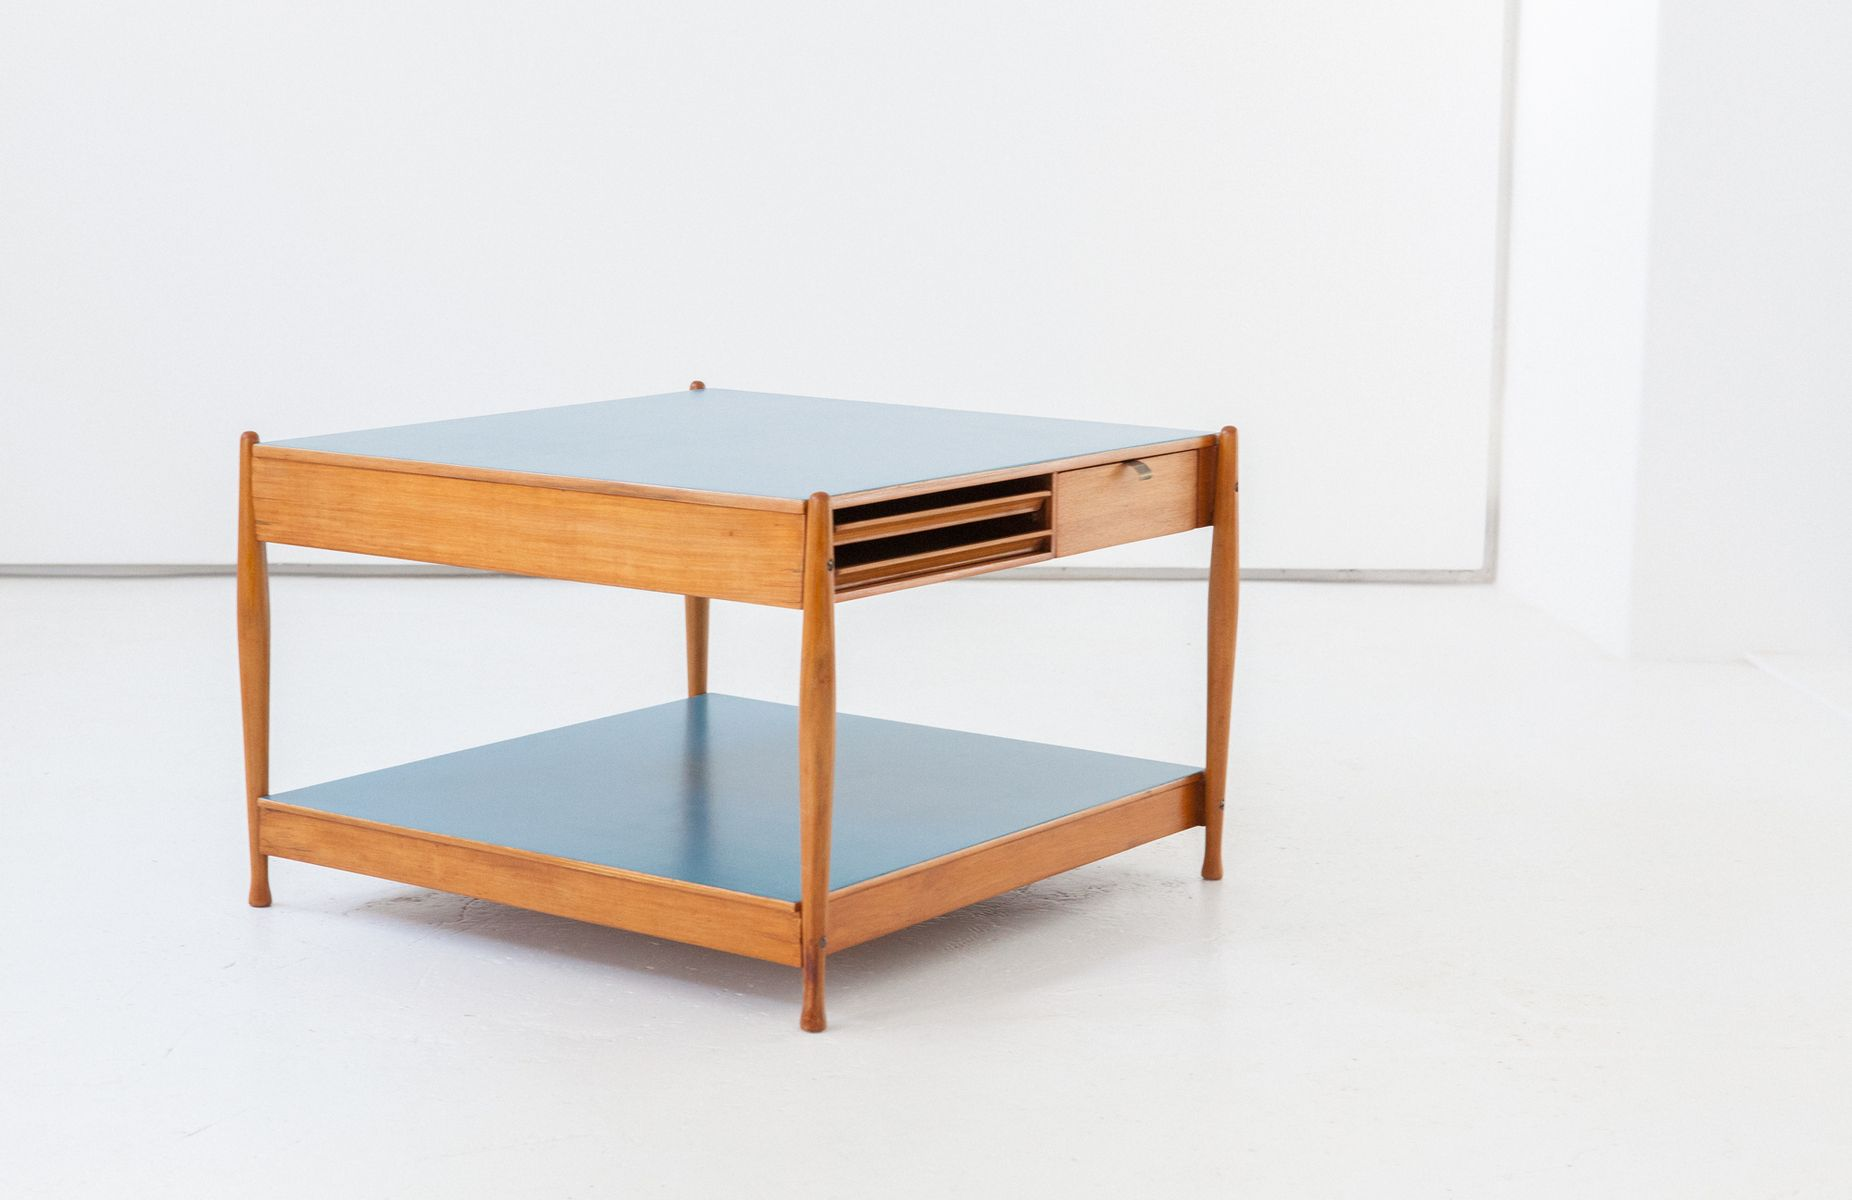 Italian low wooden coffee table with light blue tops from fratelli reguitti 1950s for sale at Low wooden coffee table